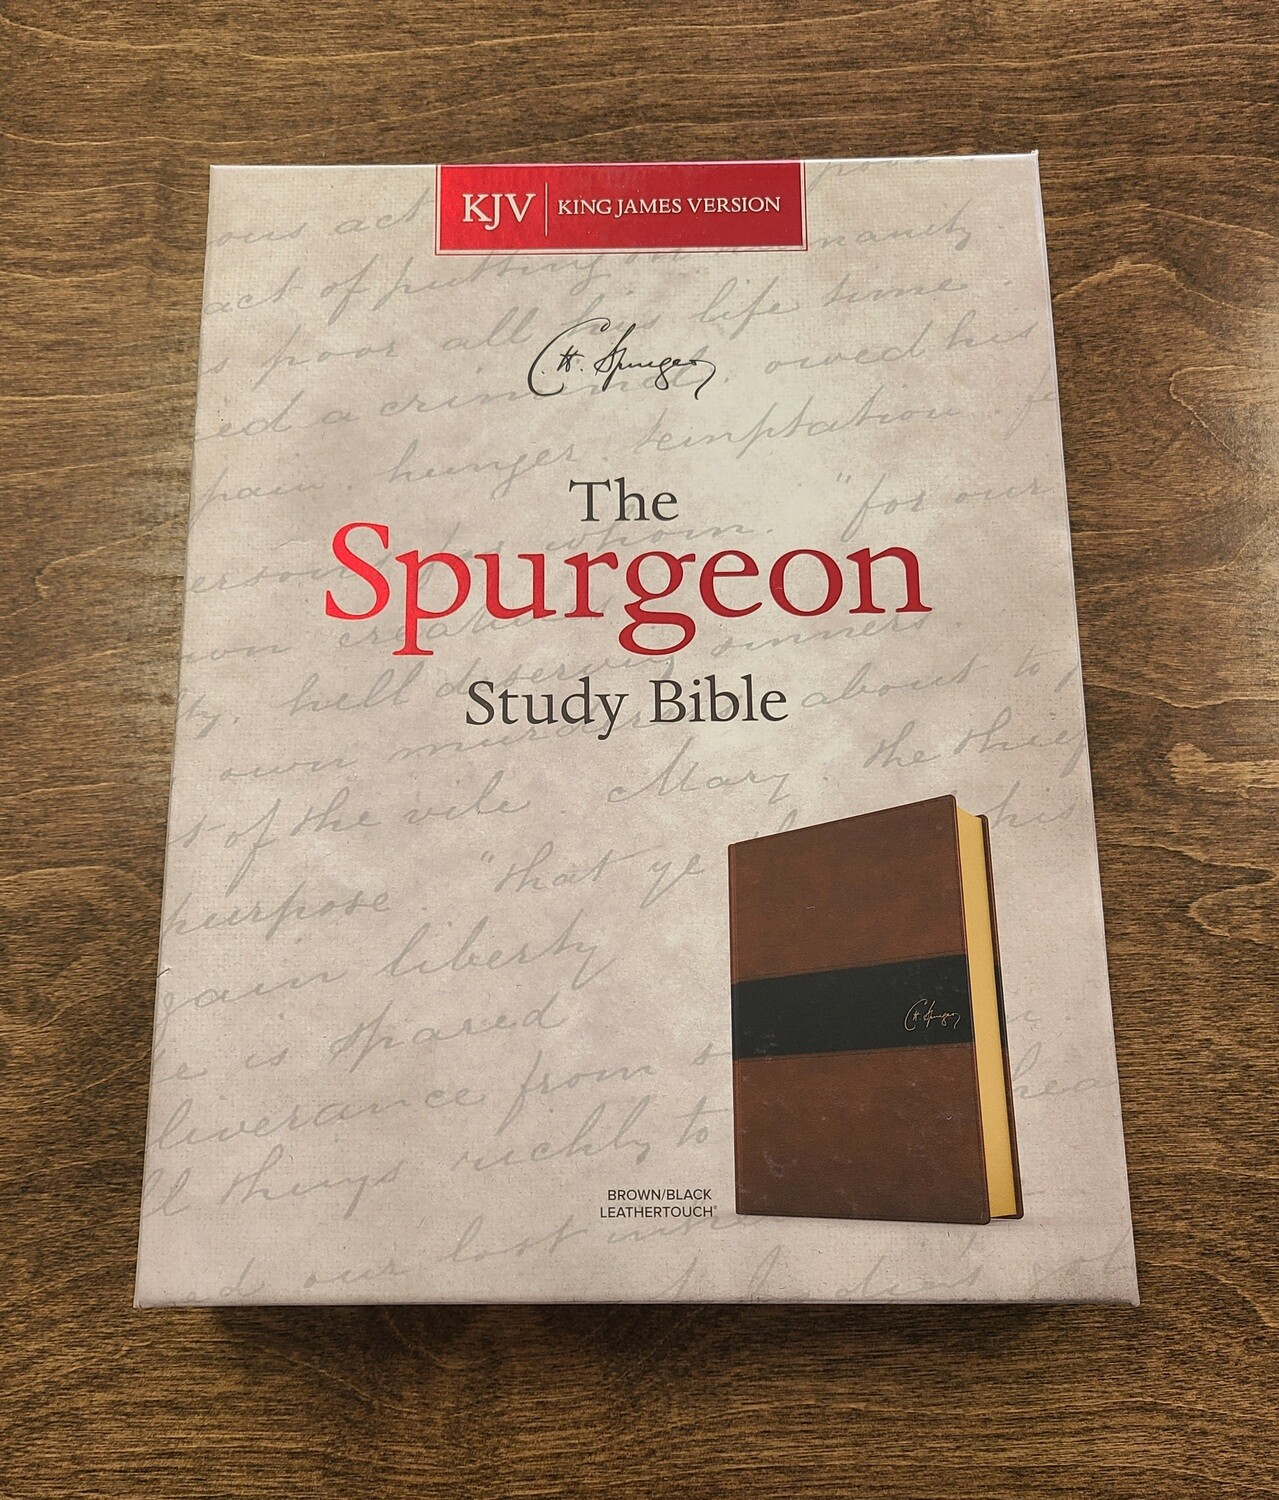 KJV Spurgeon Study Bible - Soft Brown/Black LeatherTouch